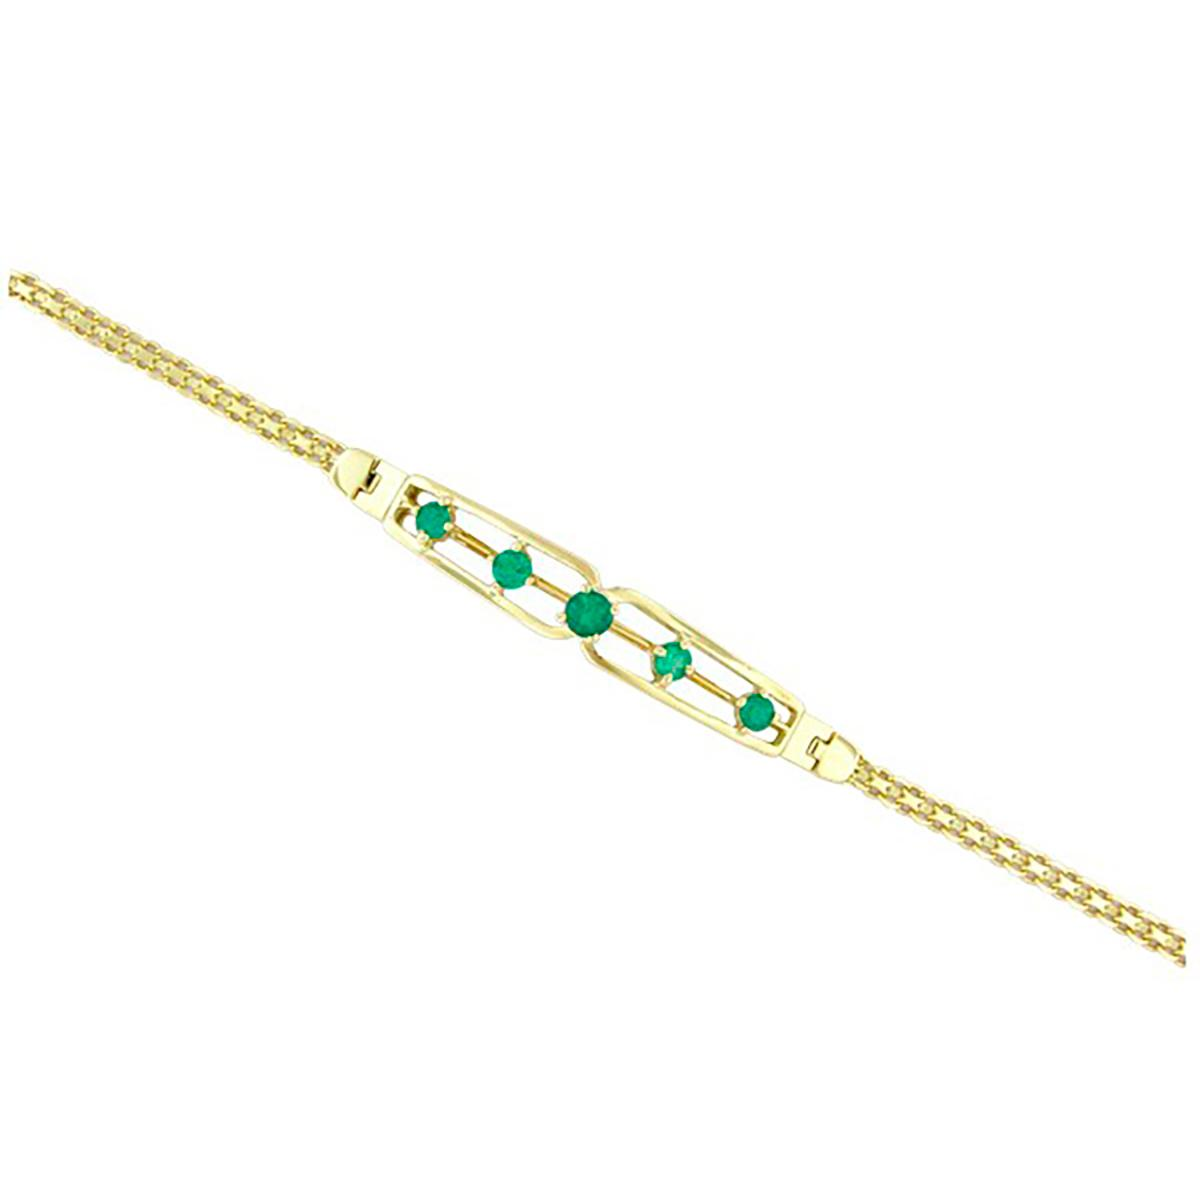 18k-yellow-gold-emerald-bracelet-with-5-round-cut-natural-emeralds